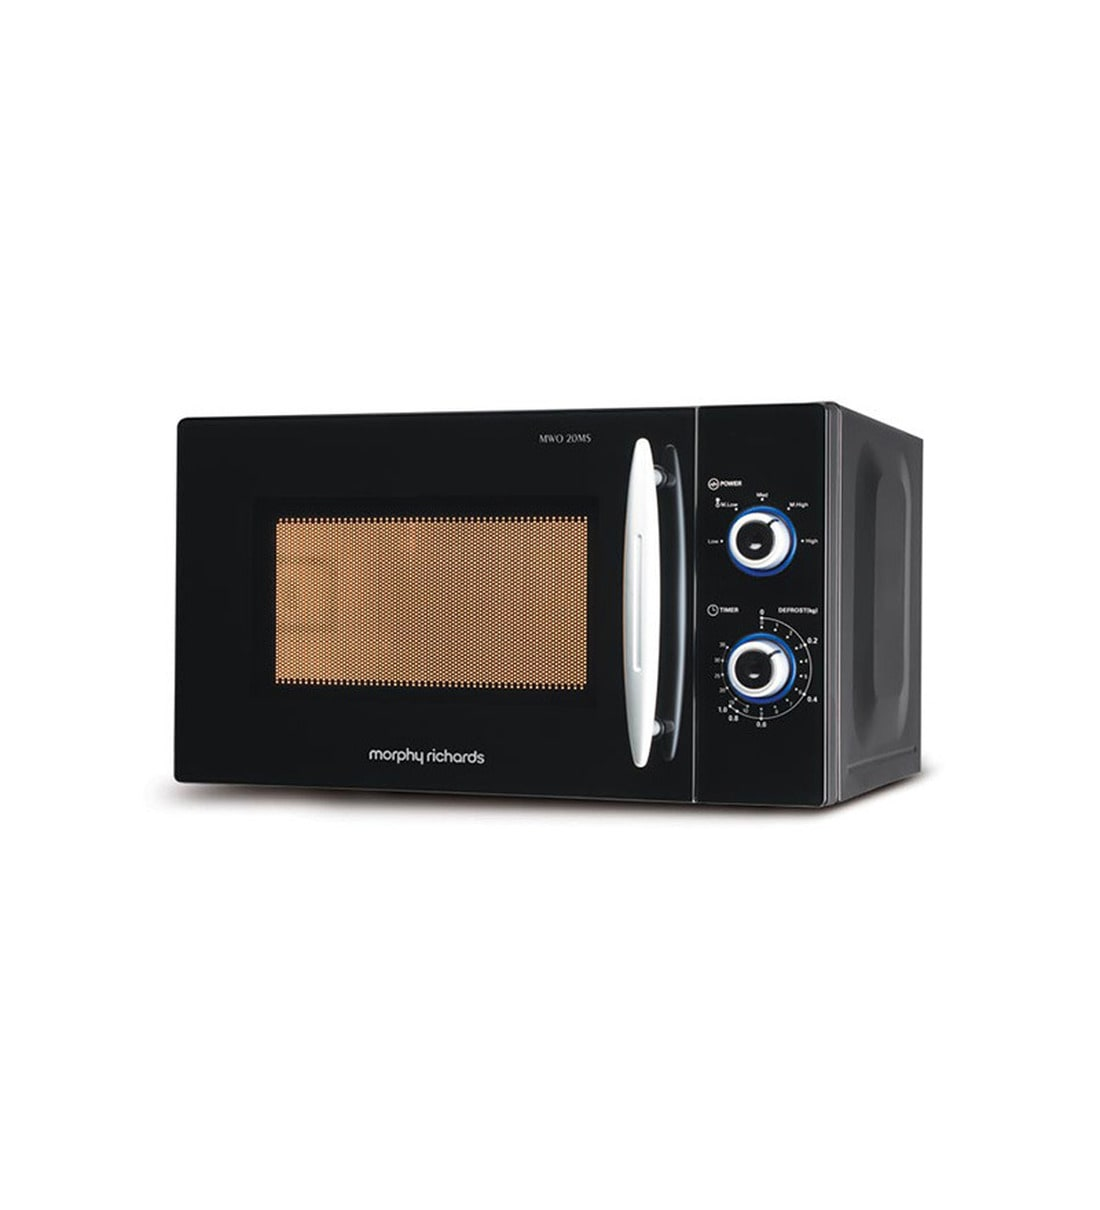 Buy Morphy Richards Mwo20 Ms 20l Microwave Oven Online